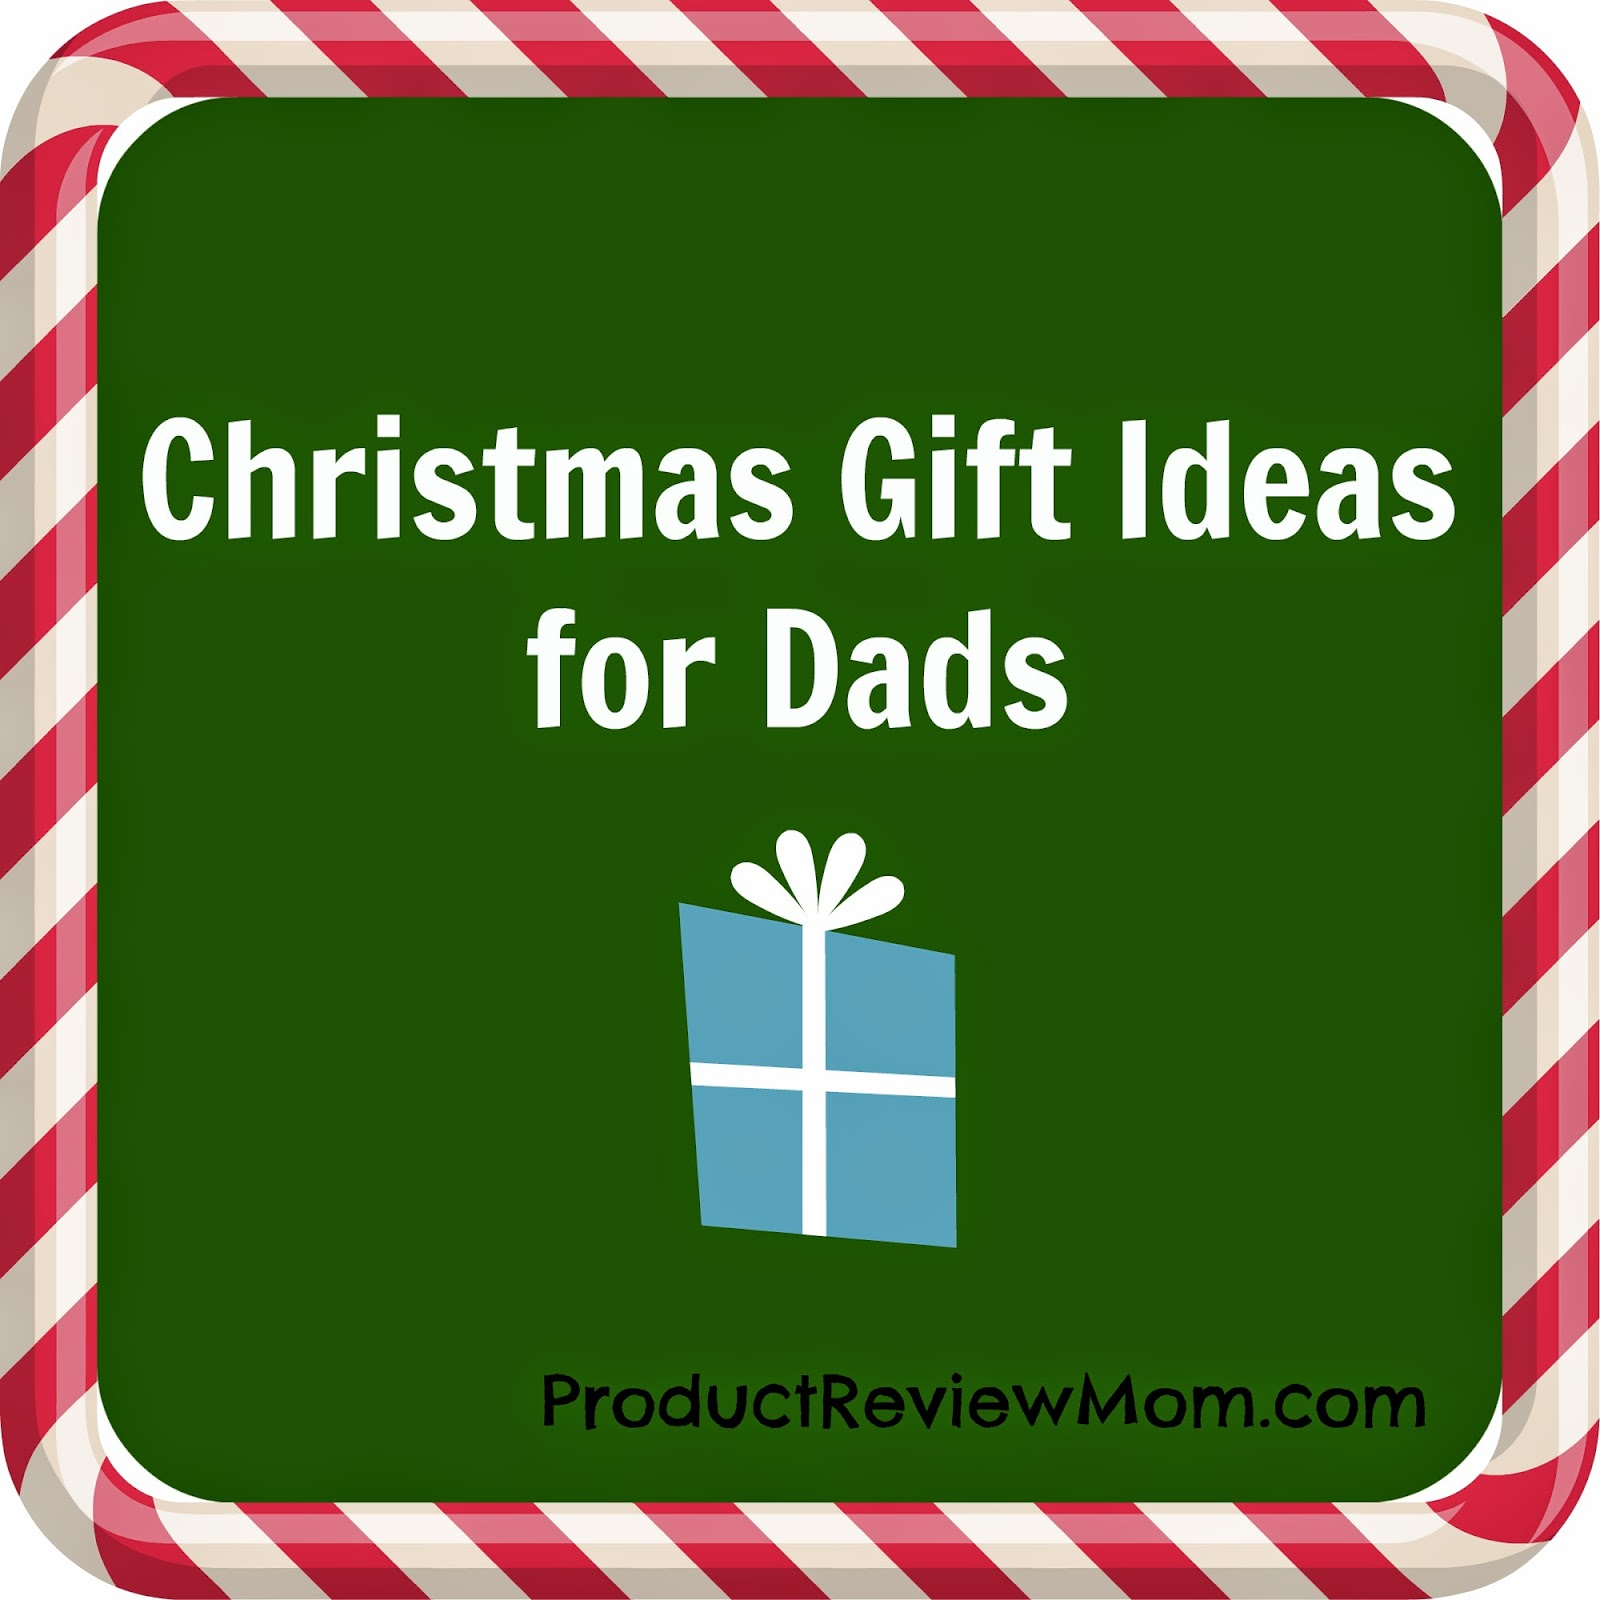 Christmas Gift Ideas for Dads #HolidayGiftGuide